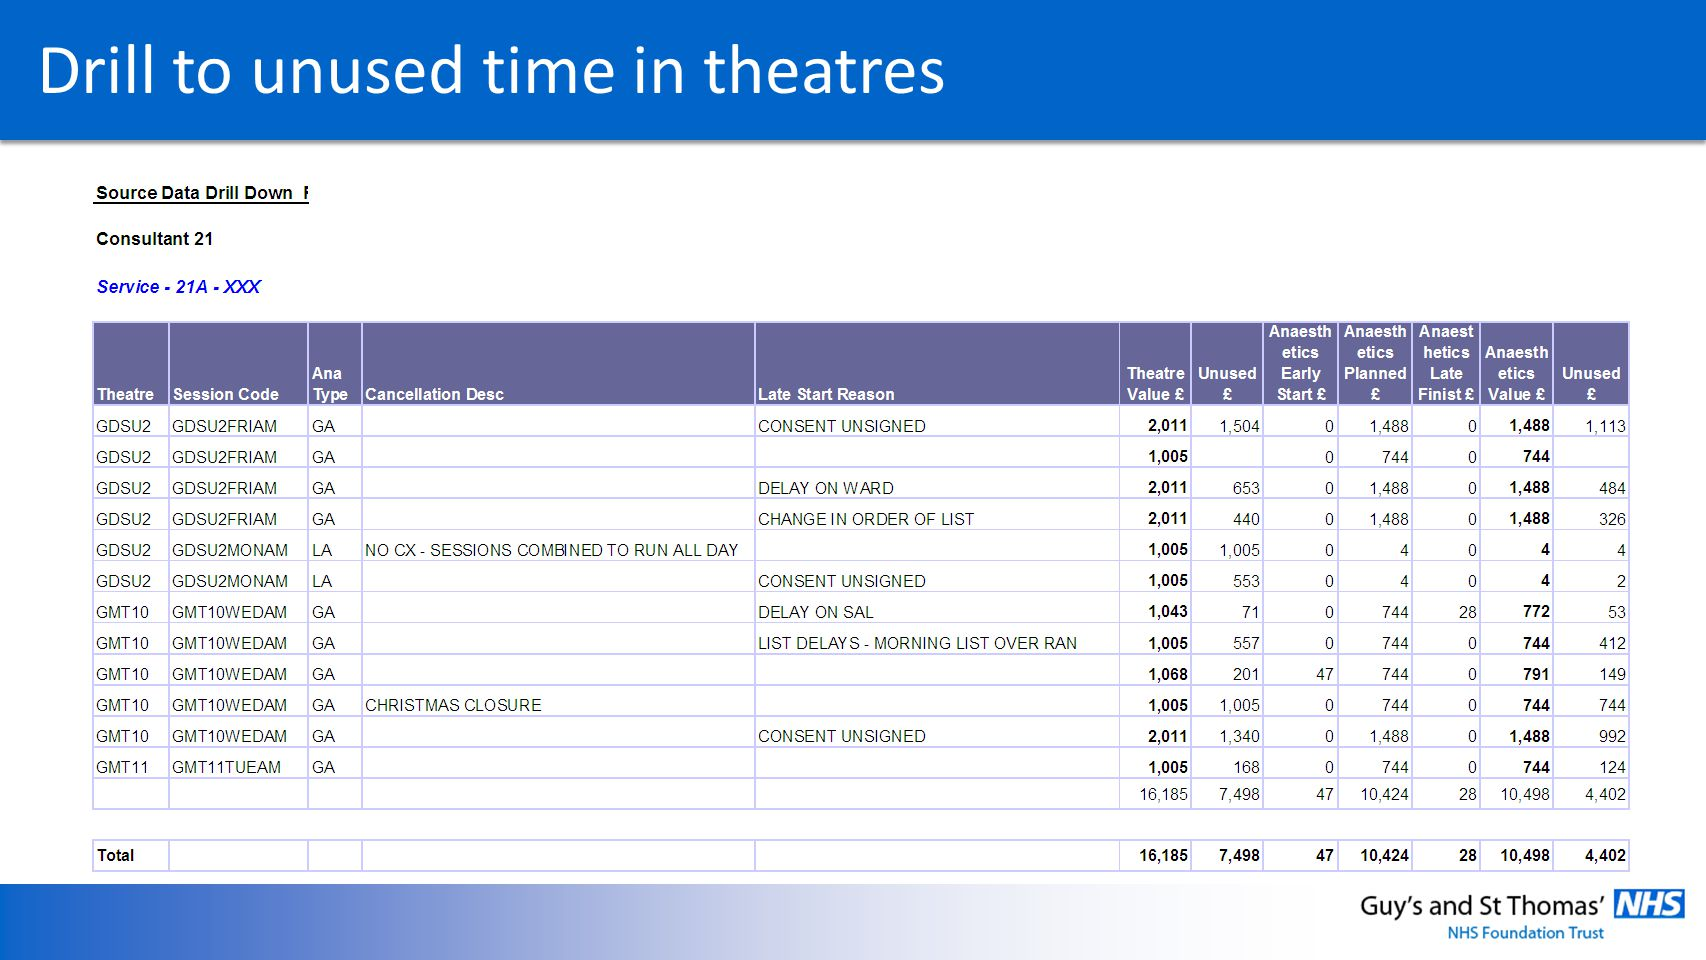 Drill to unused time in theatres